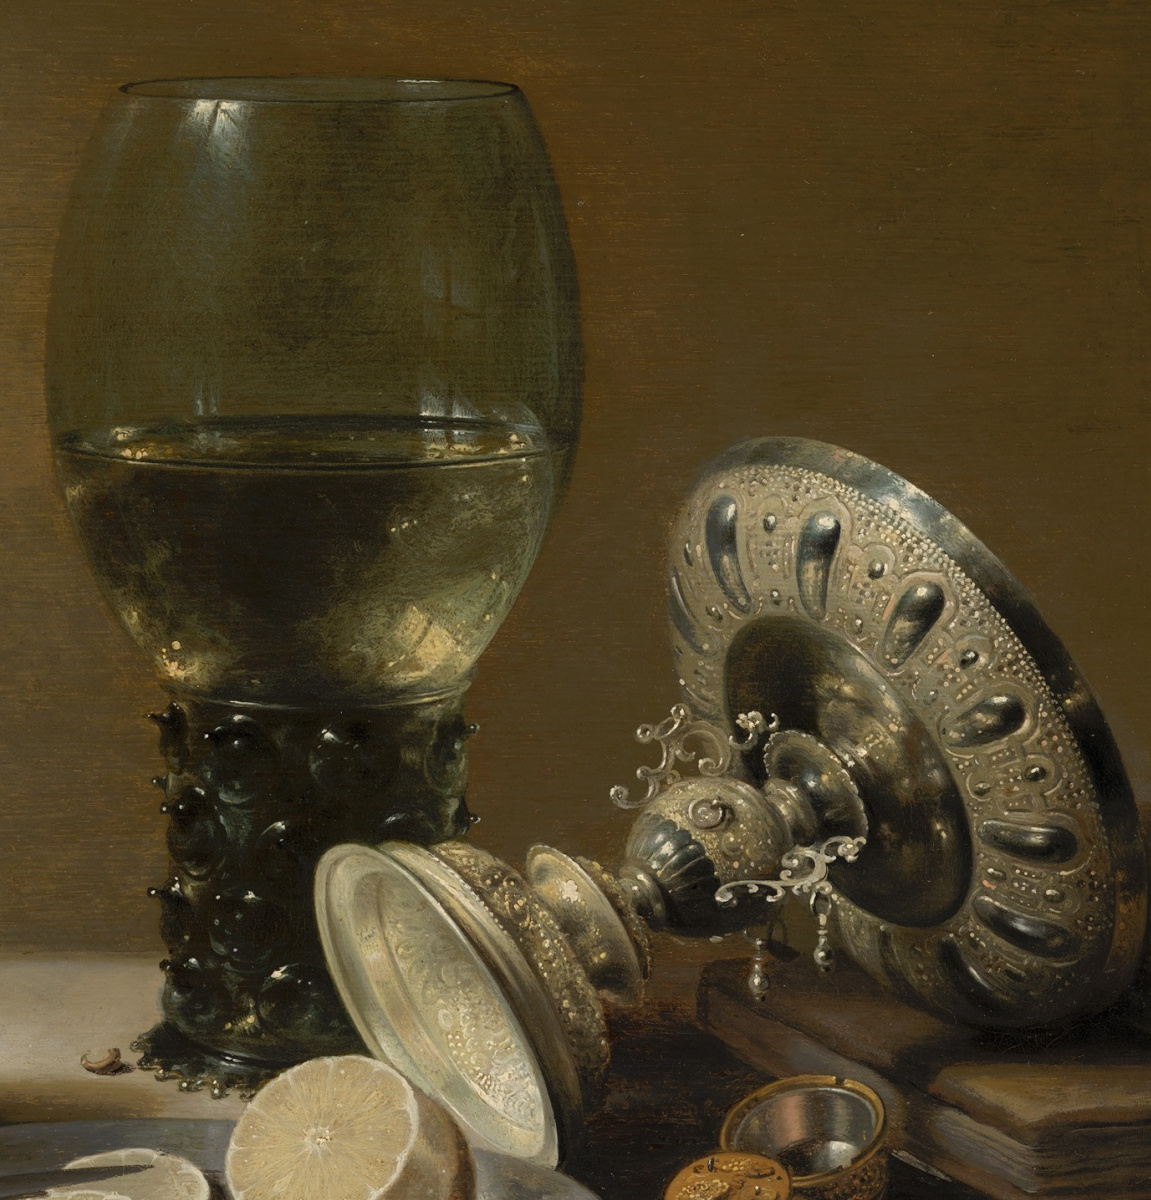 Still-life with wine glass, vase, bread and lemon